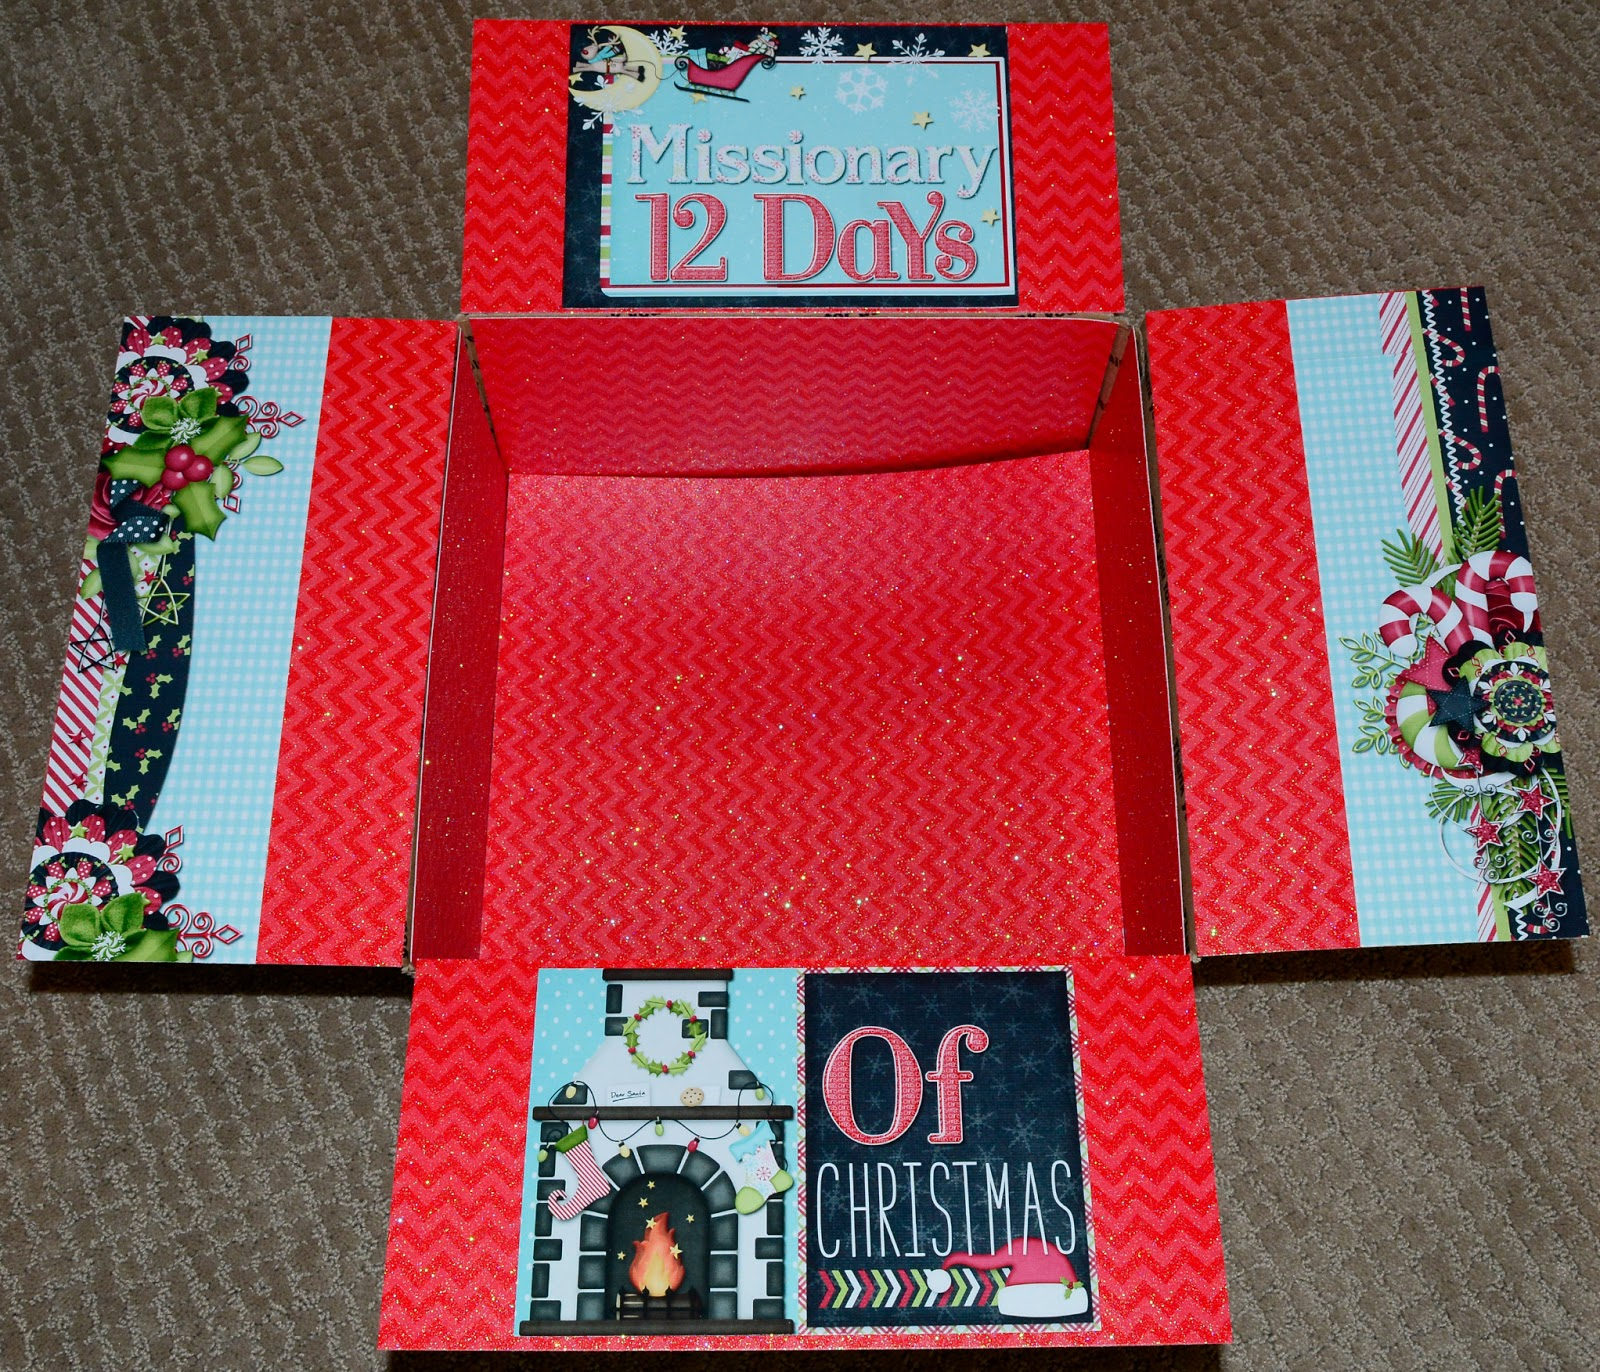 12 days of christmas gift ideas for lds missionaries girlfriends